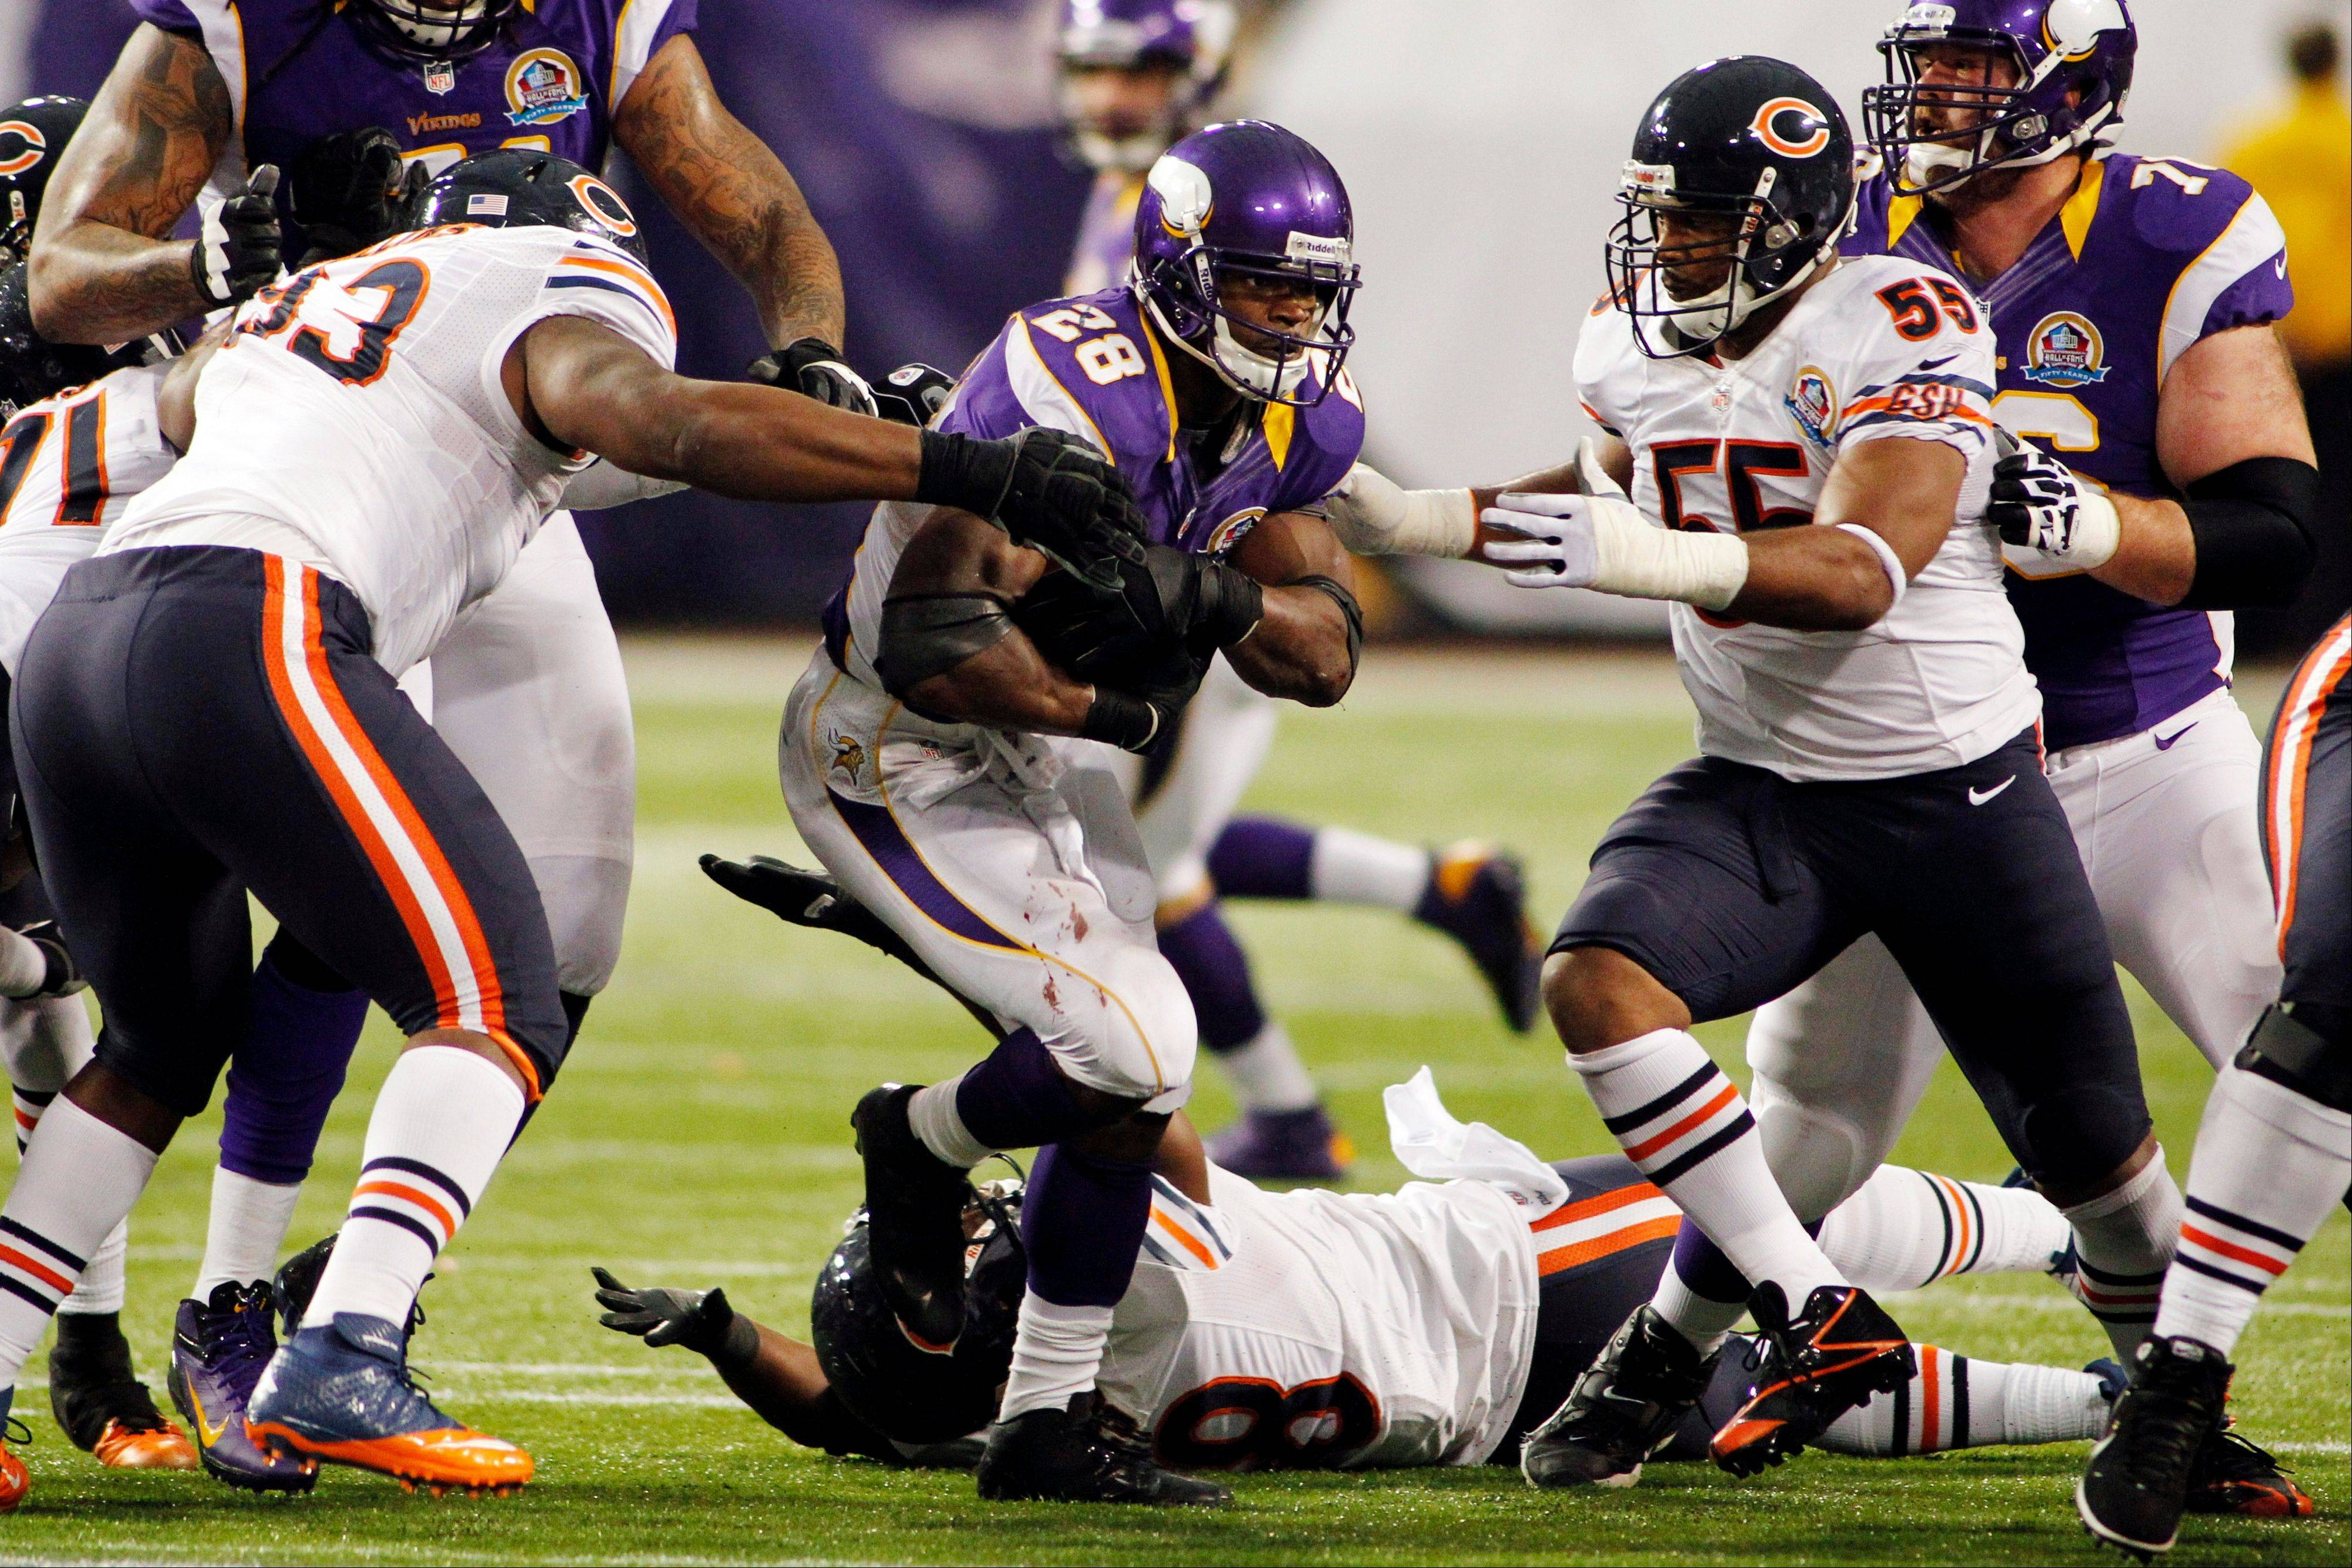 Vikings running back Adrian Peterson (28) rushes between Chicago Bears� Nate Collins, left, and Lance Briggs, right, during the second half of an NFL football game, Sunday, Dec. 9, 2012, in Minneapolis. The Vikings won 21-14.